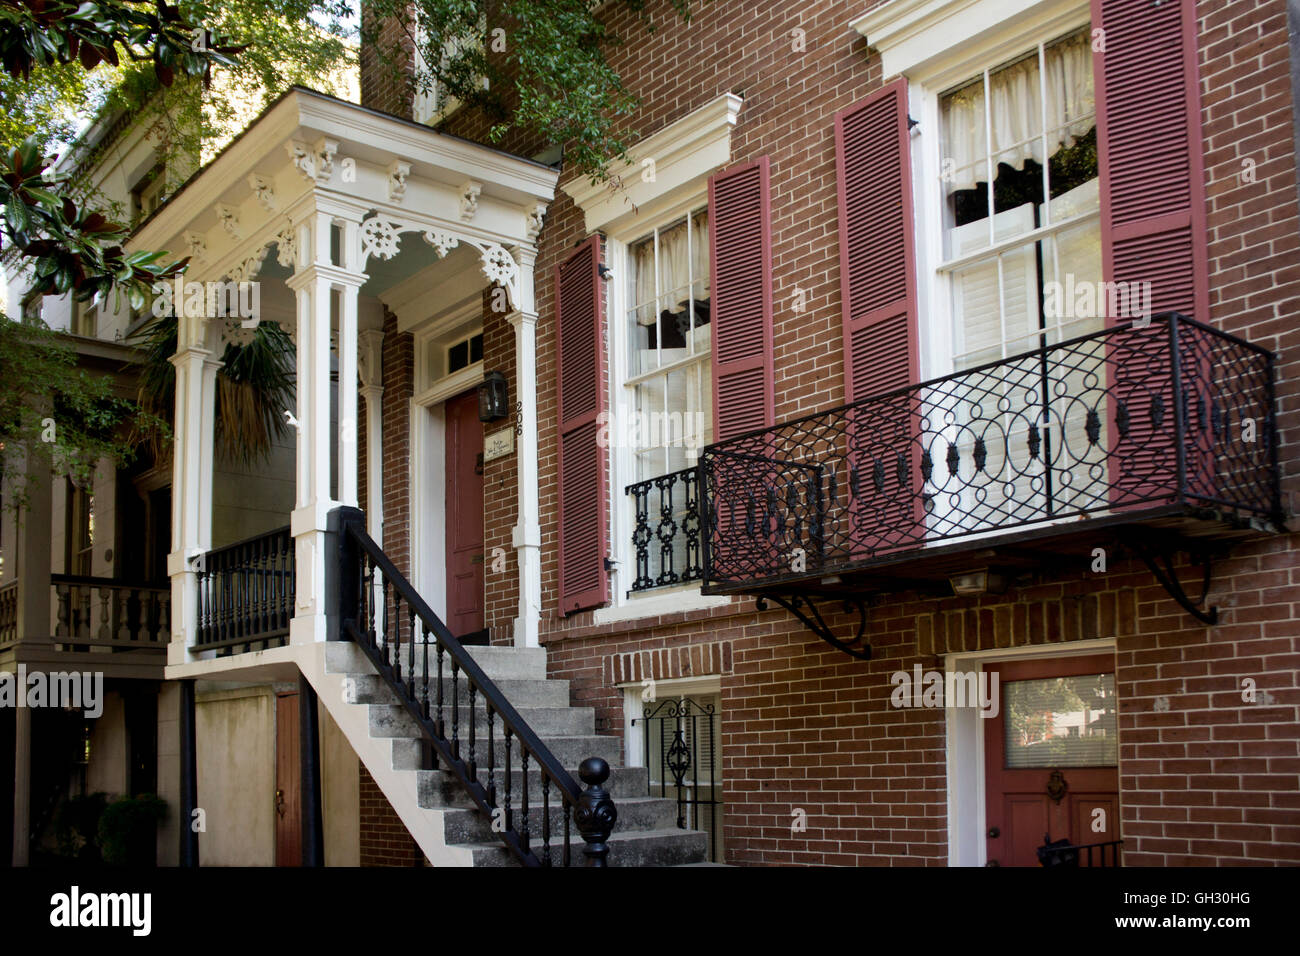 1869 Federal-style home with ironwork and hurricane shutters.  Savannah, Georgia. - Stock Image